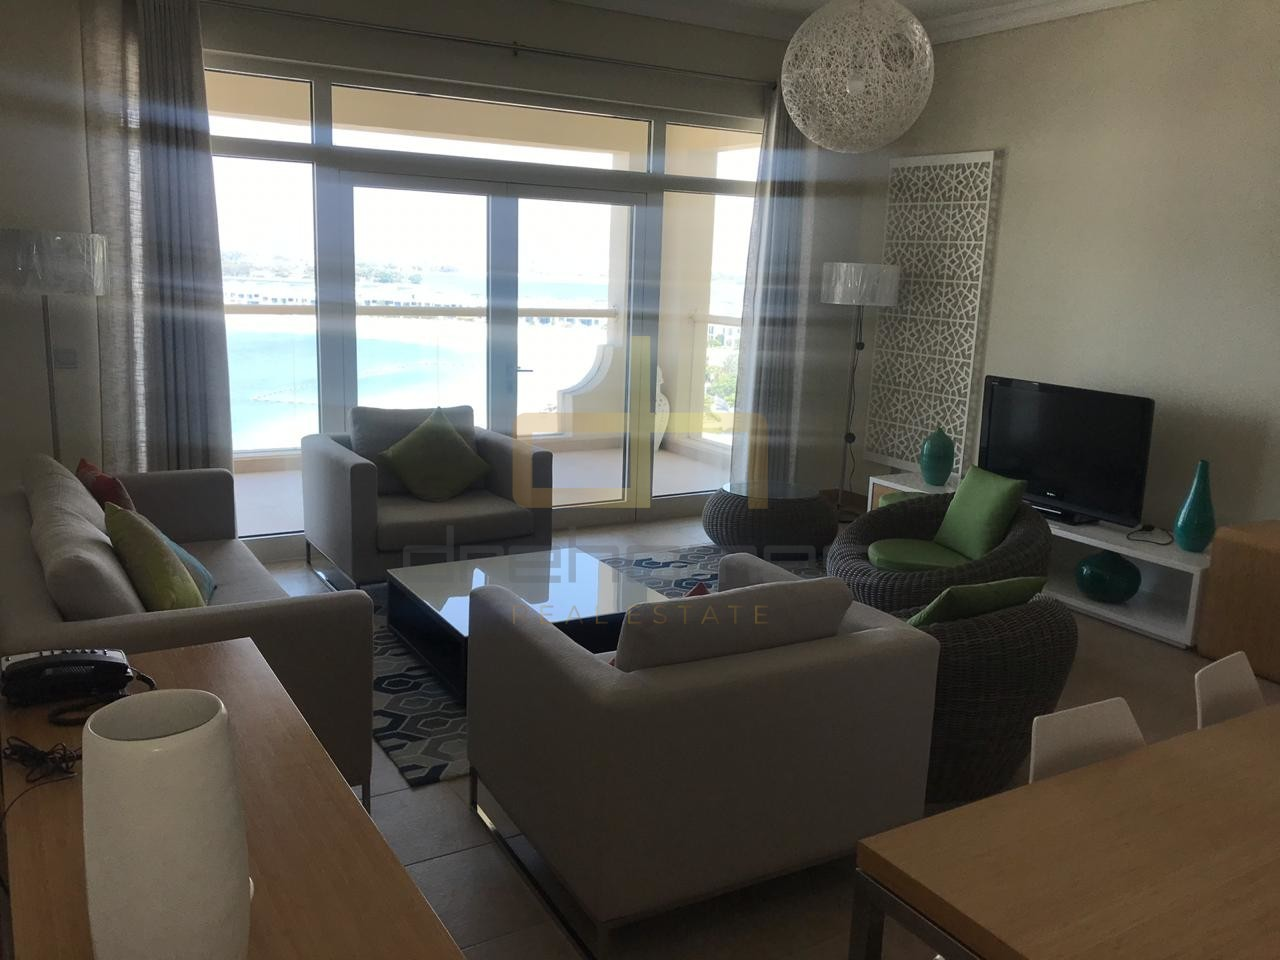 3 Bed I Furnished I Free Chiller & Beach